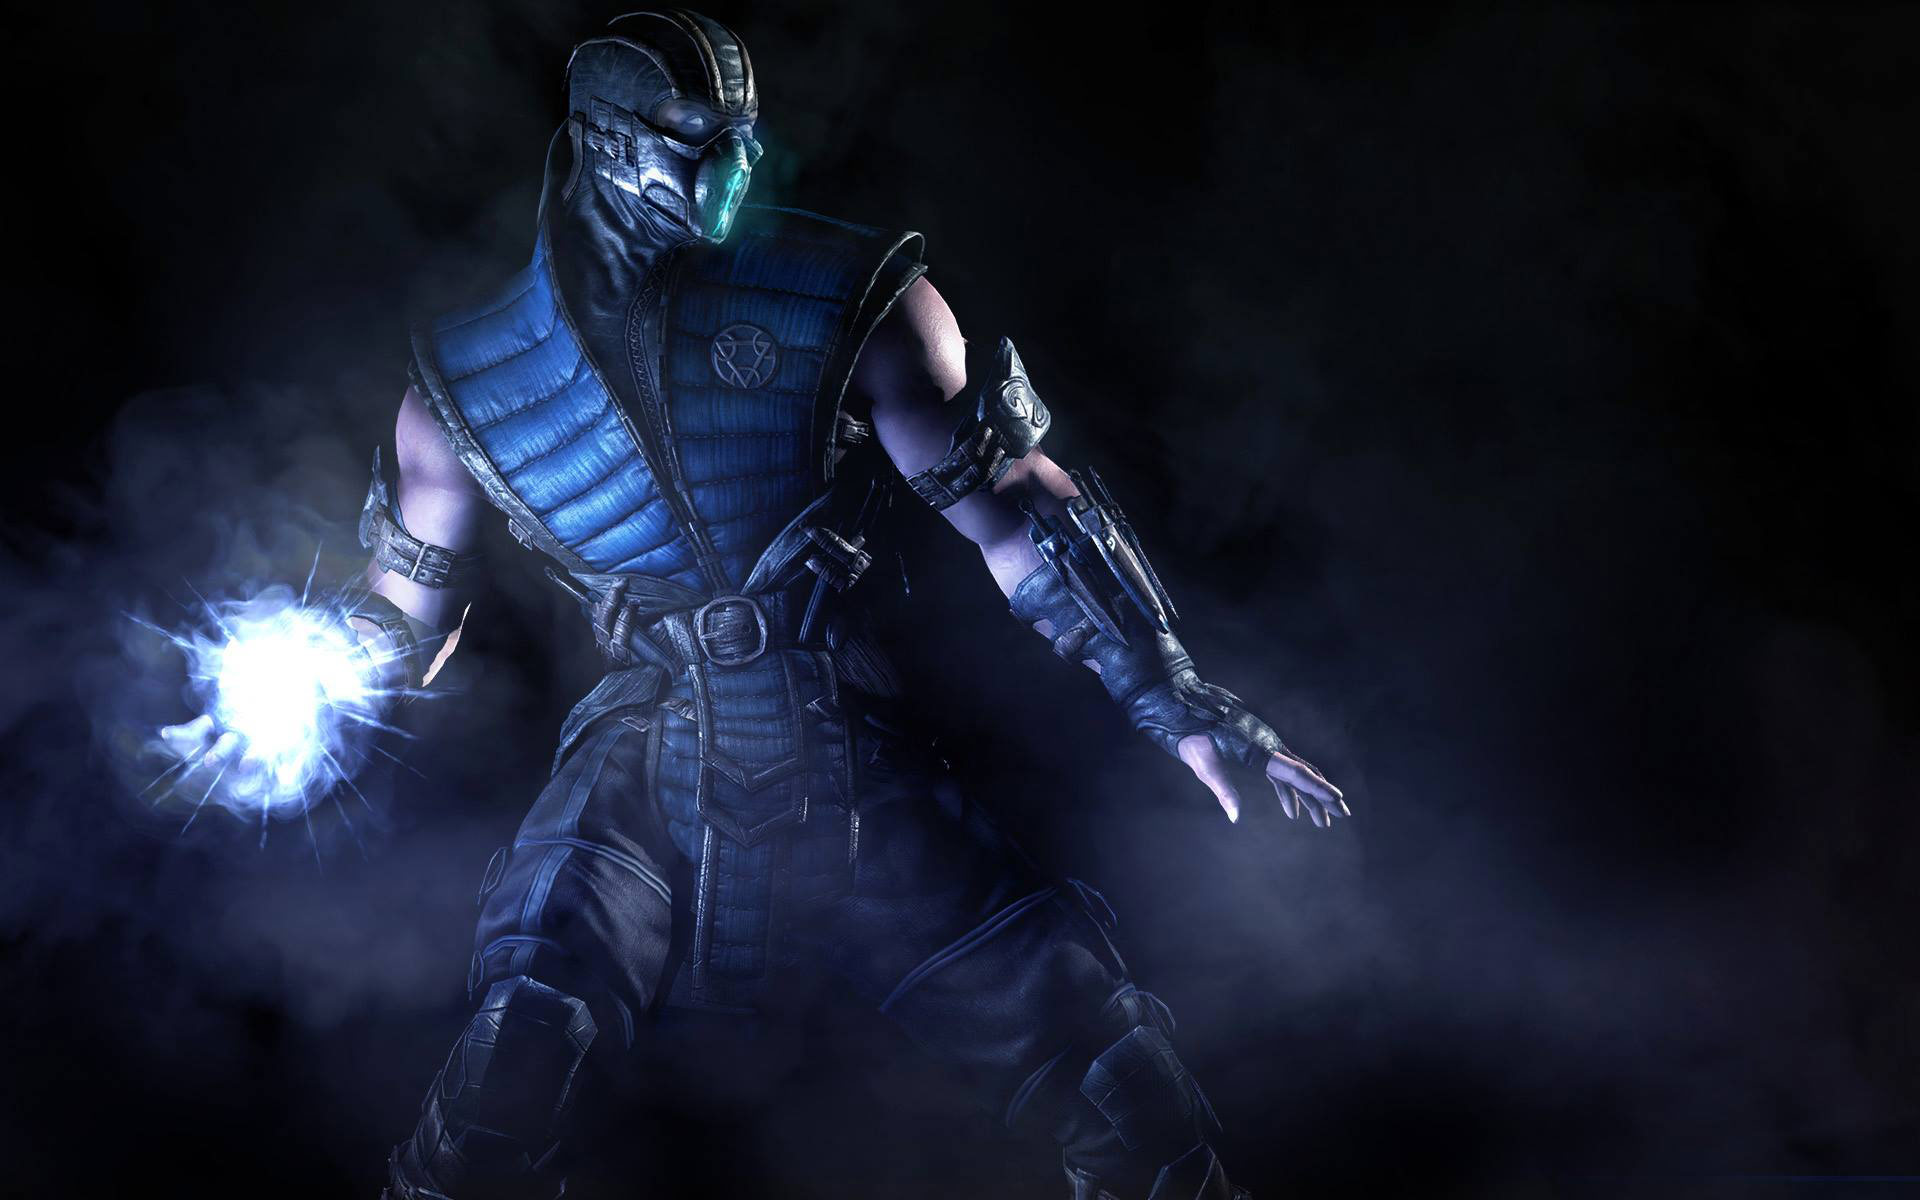 Sub Zero Mortal Kombat Wallpaper 1920x1200 7760